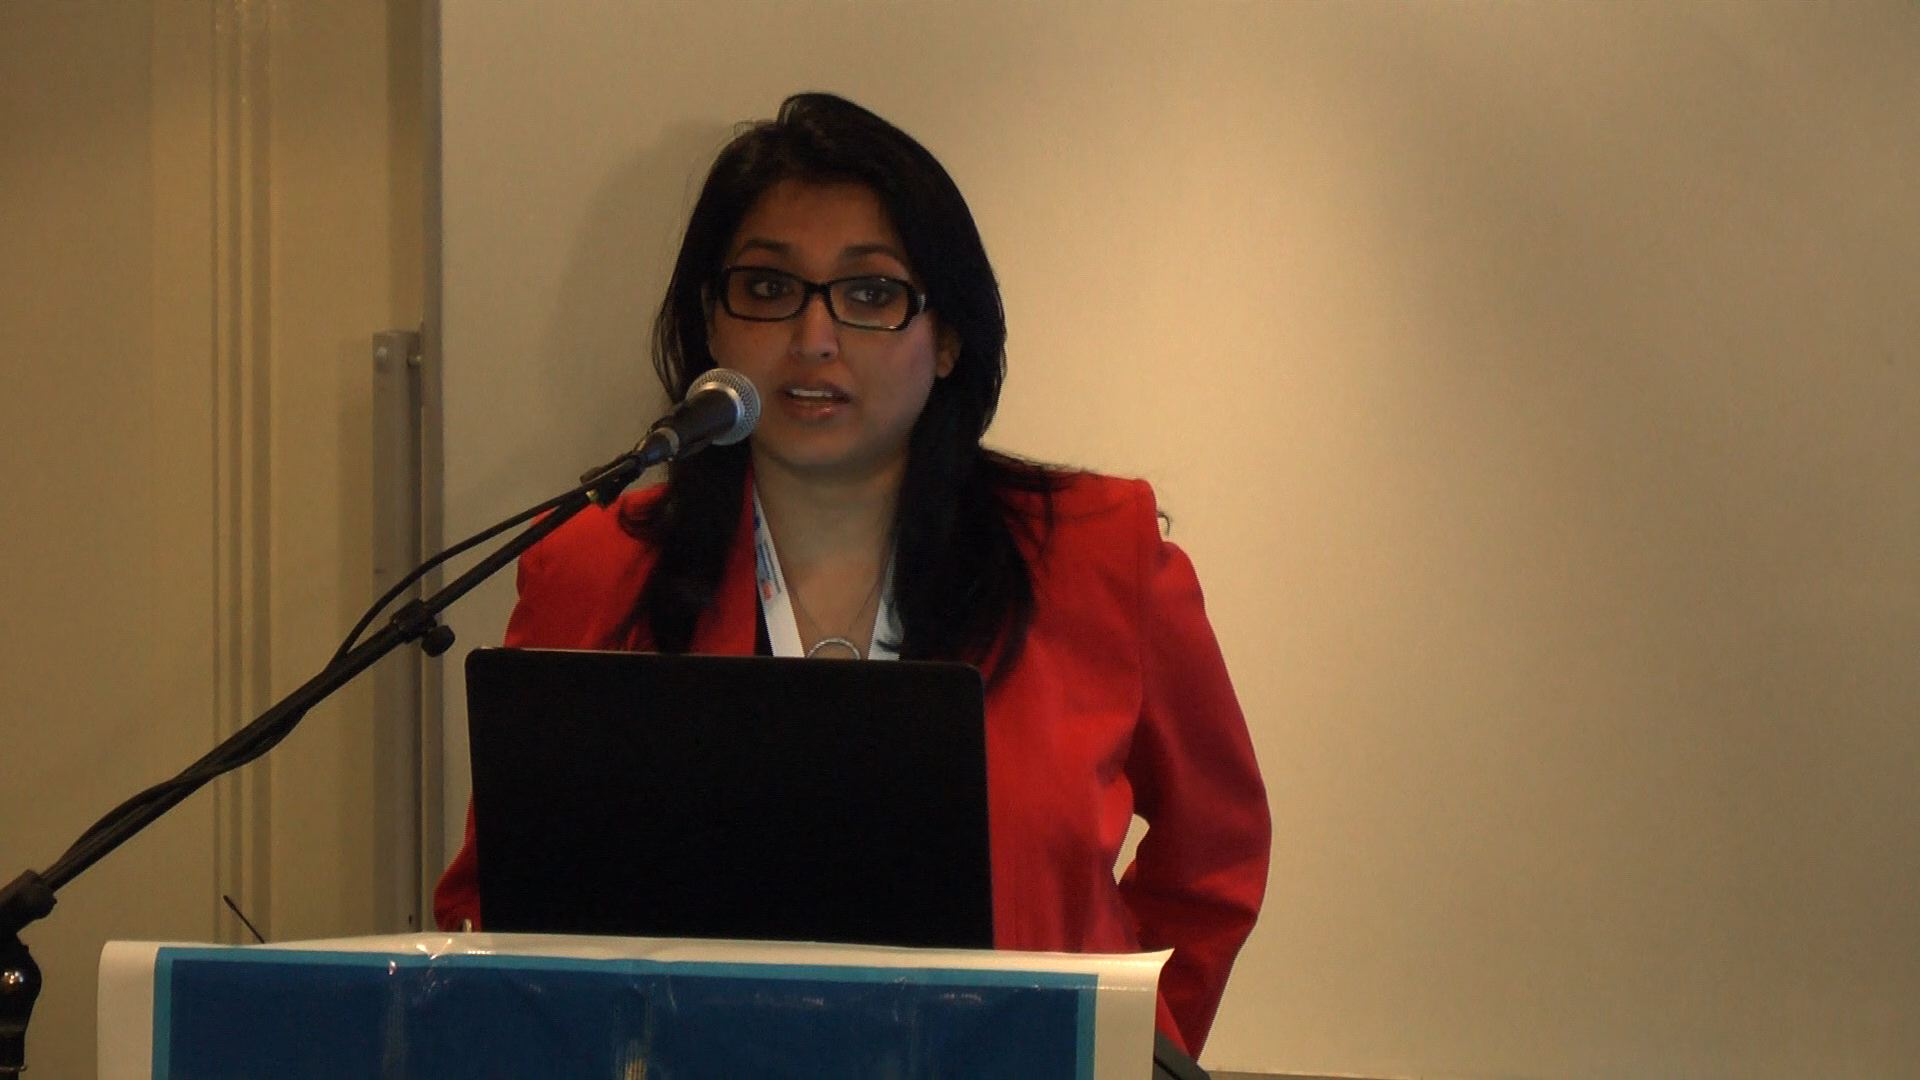 sobia-bilal-international-medical-university-cancer-summit-2015-australia-omics-international-1439376026.jpg